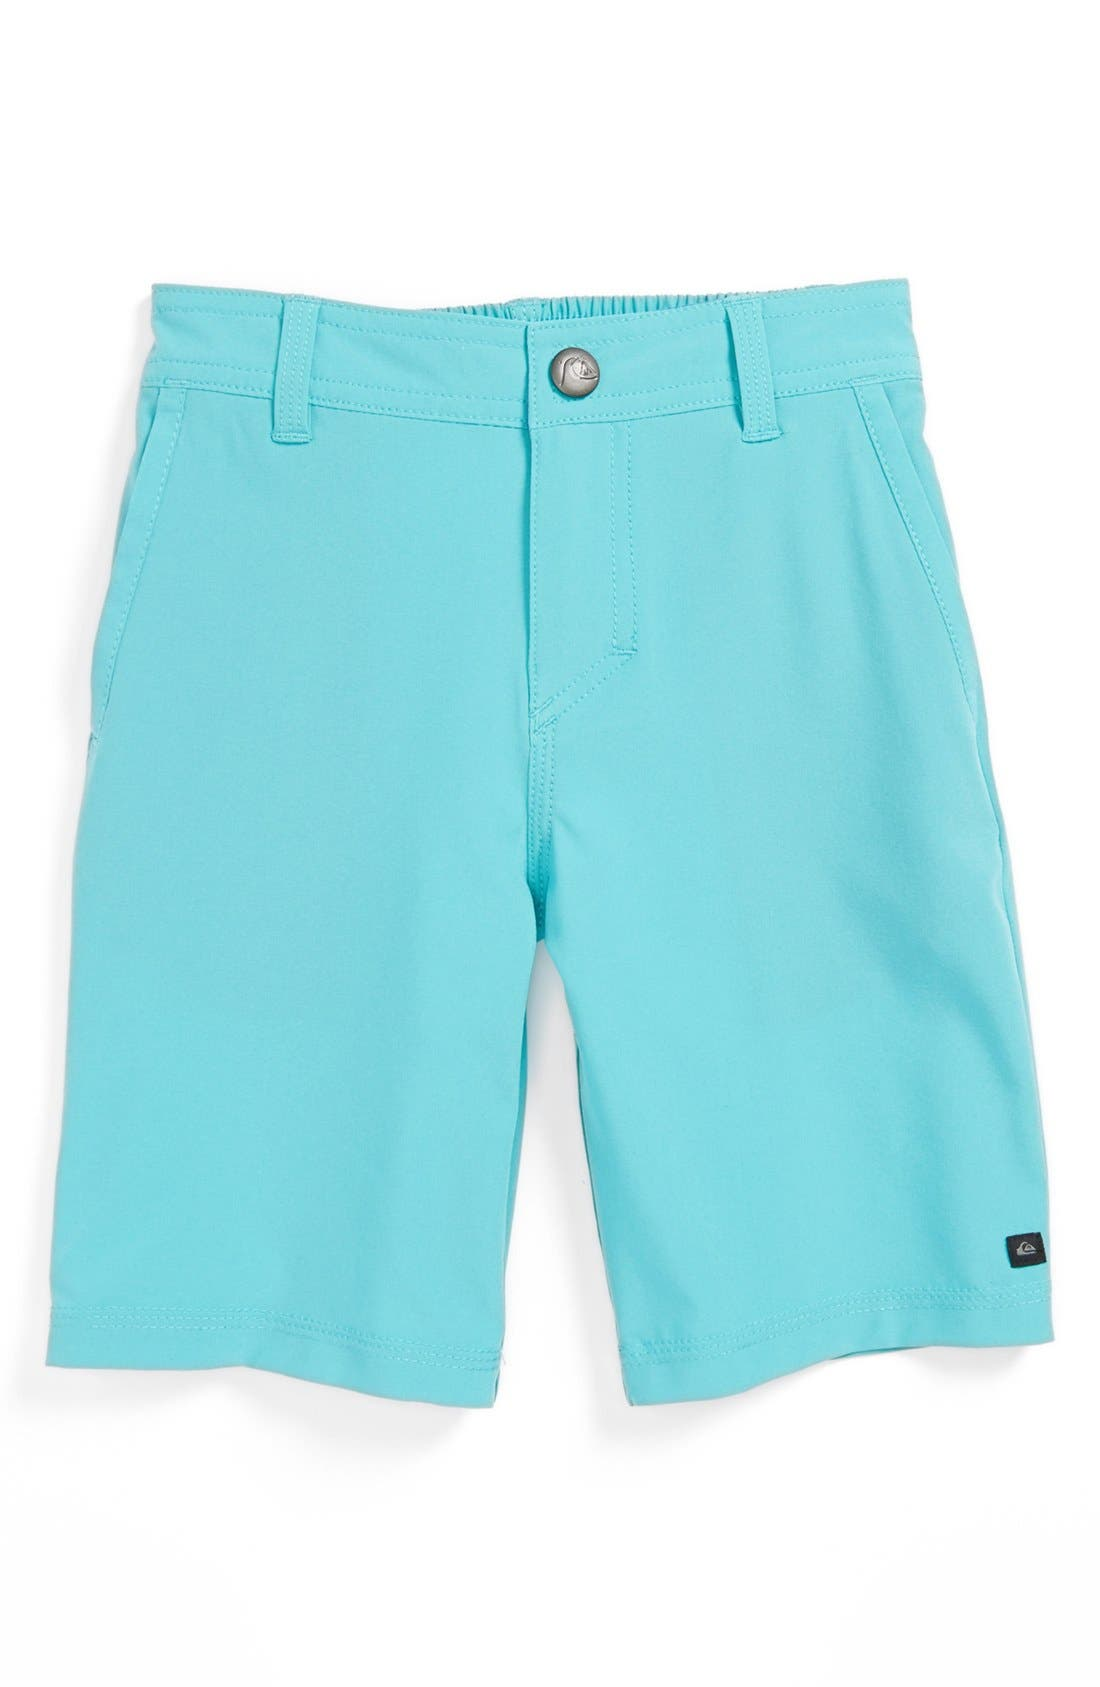 Alternate Image 1 Selected - Quiksilver 'F.A.A.' Board Shorts (Little Boys)